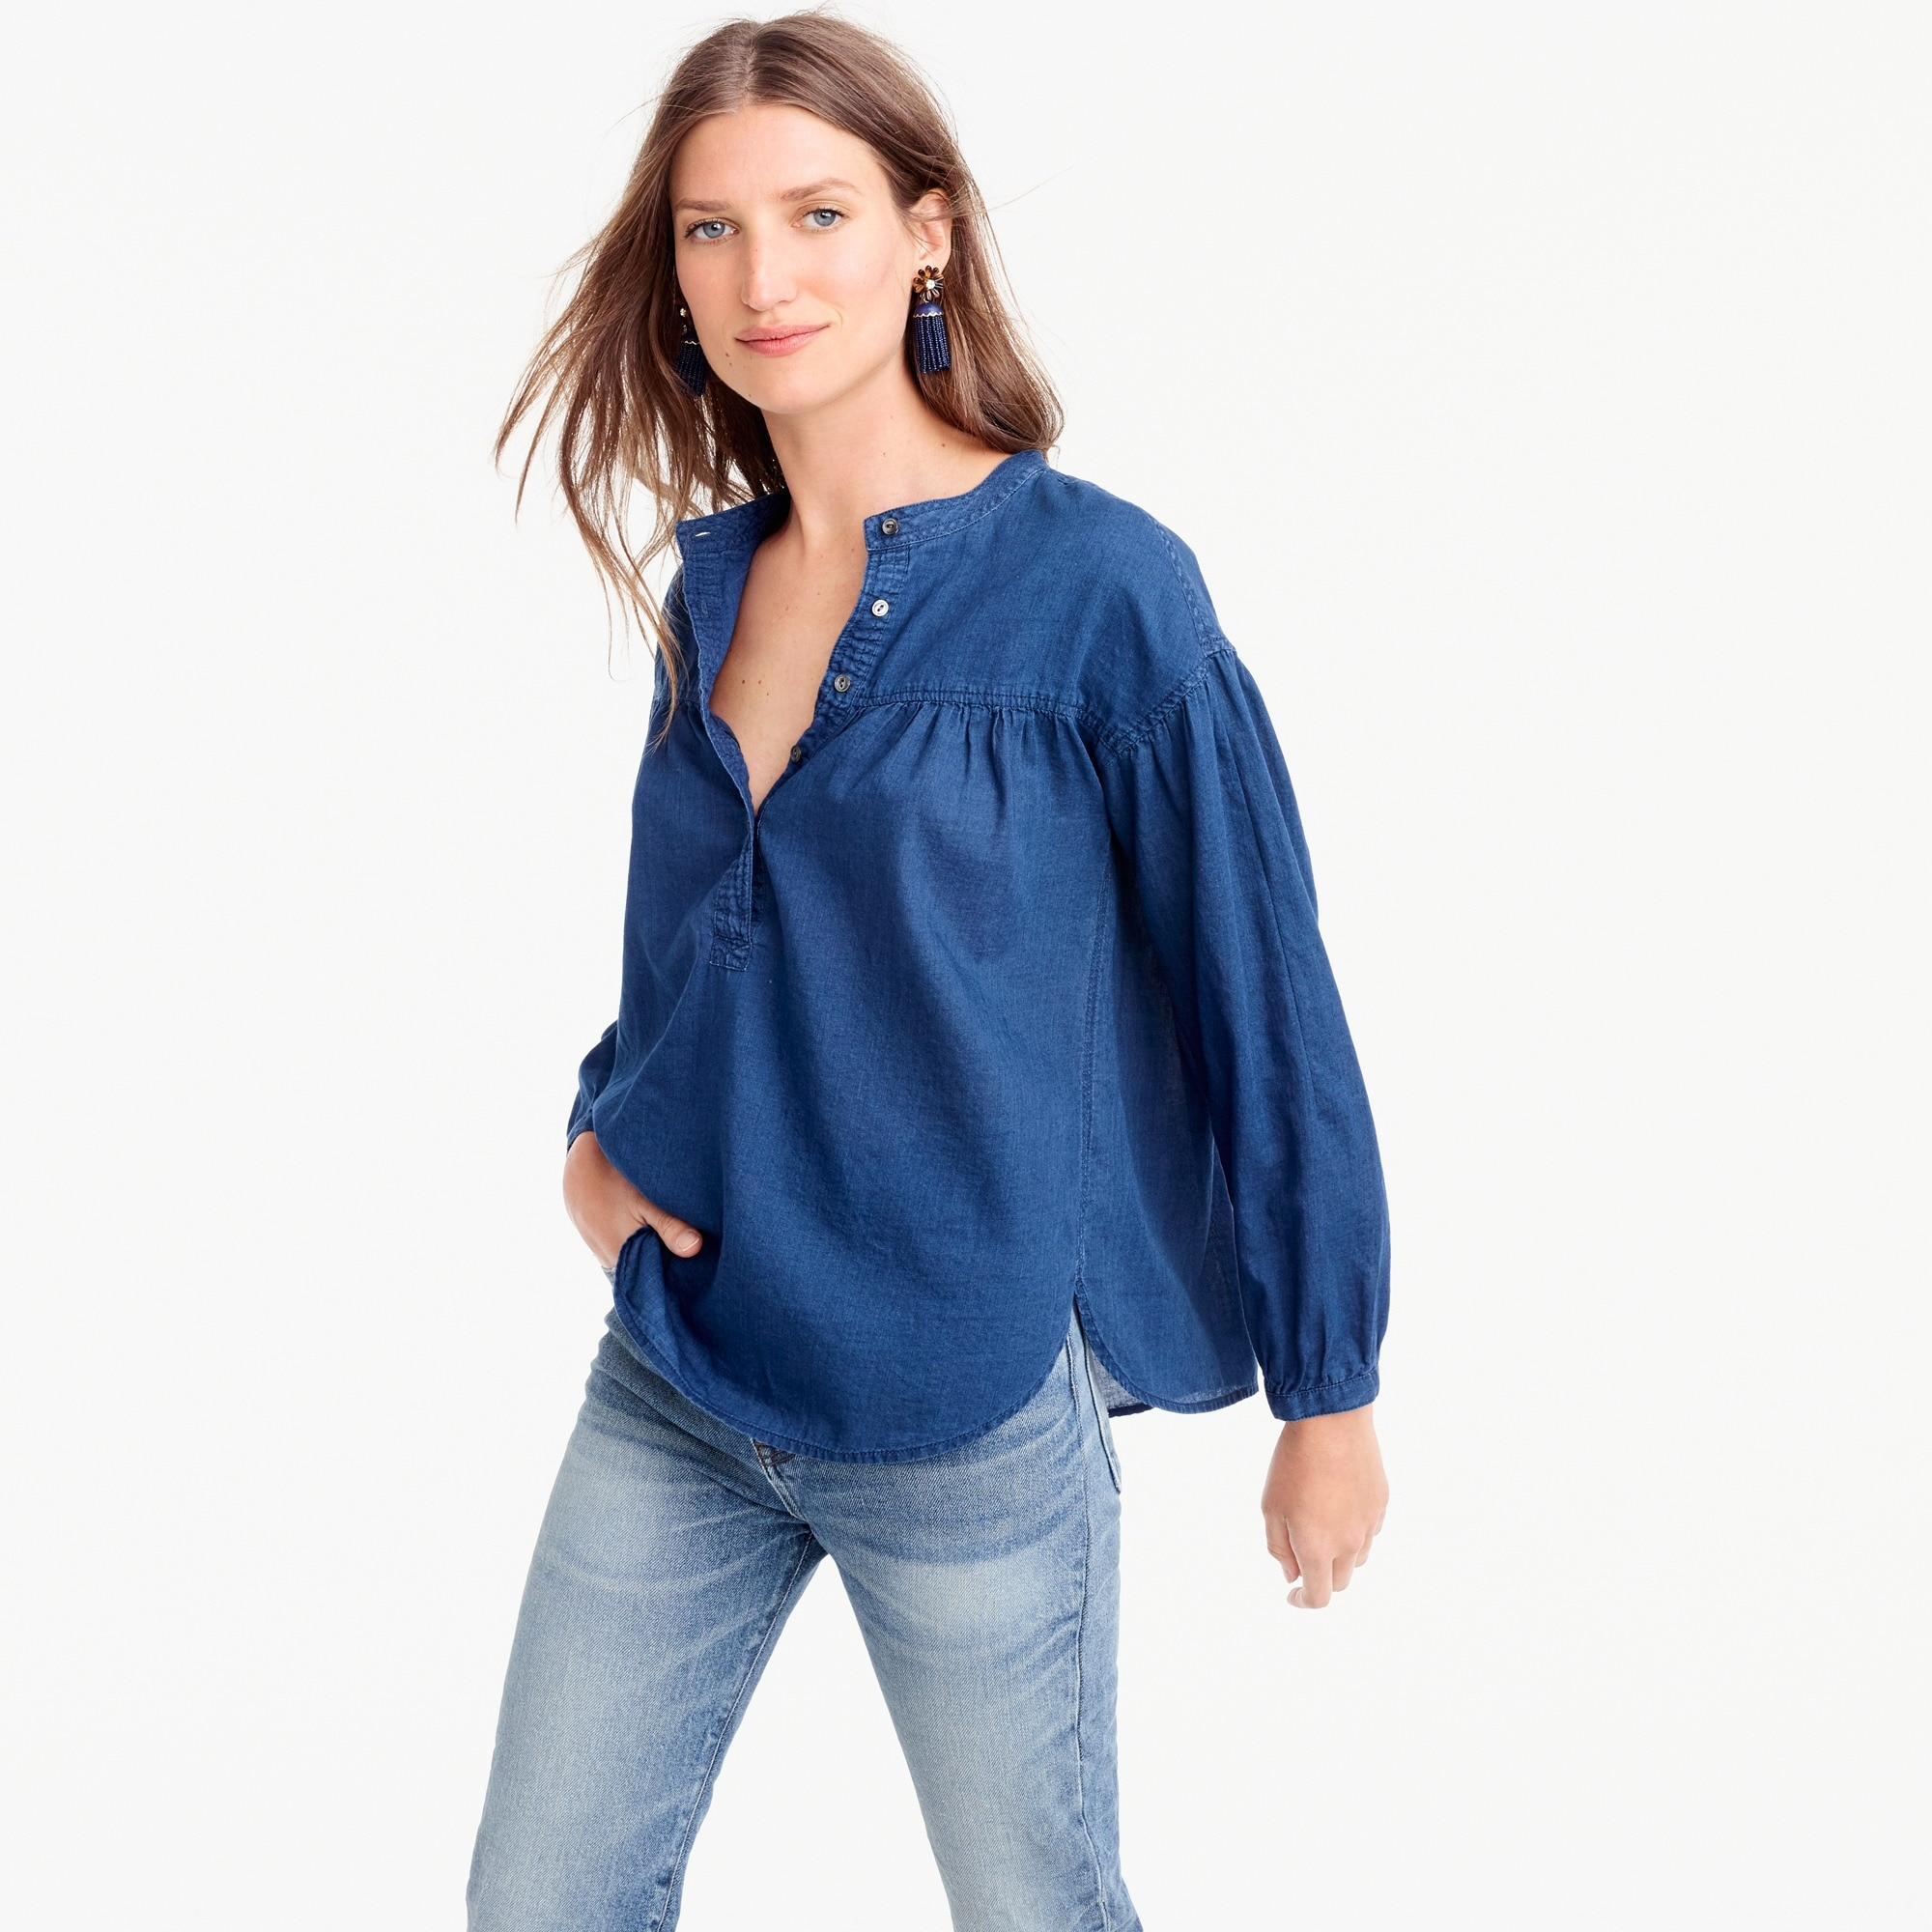 petite gathered top in indigo gauze : women shirts & tops